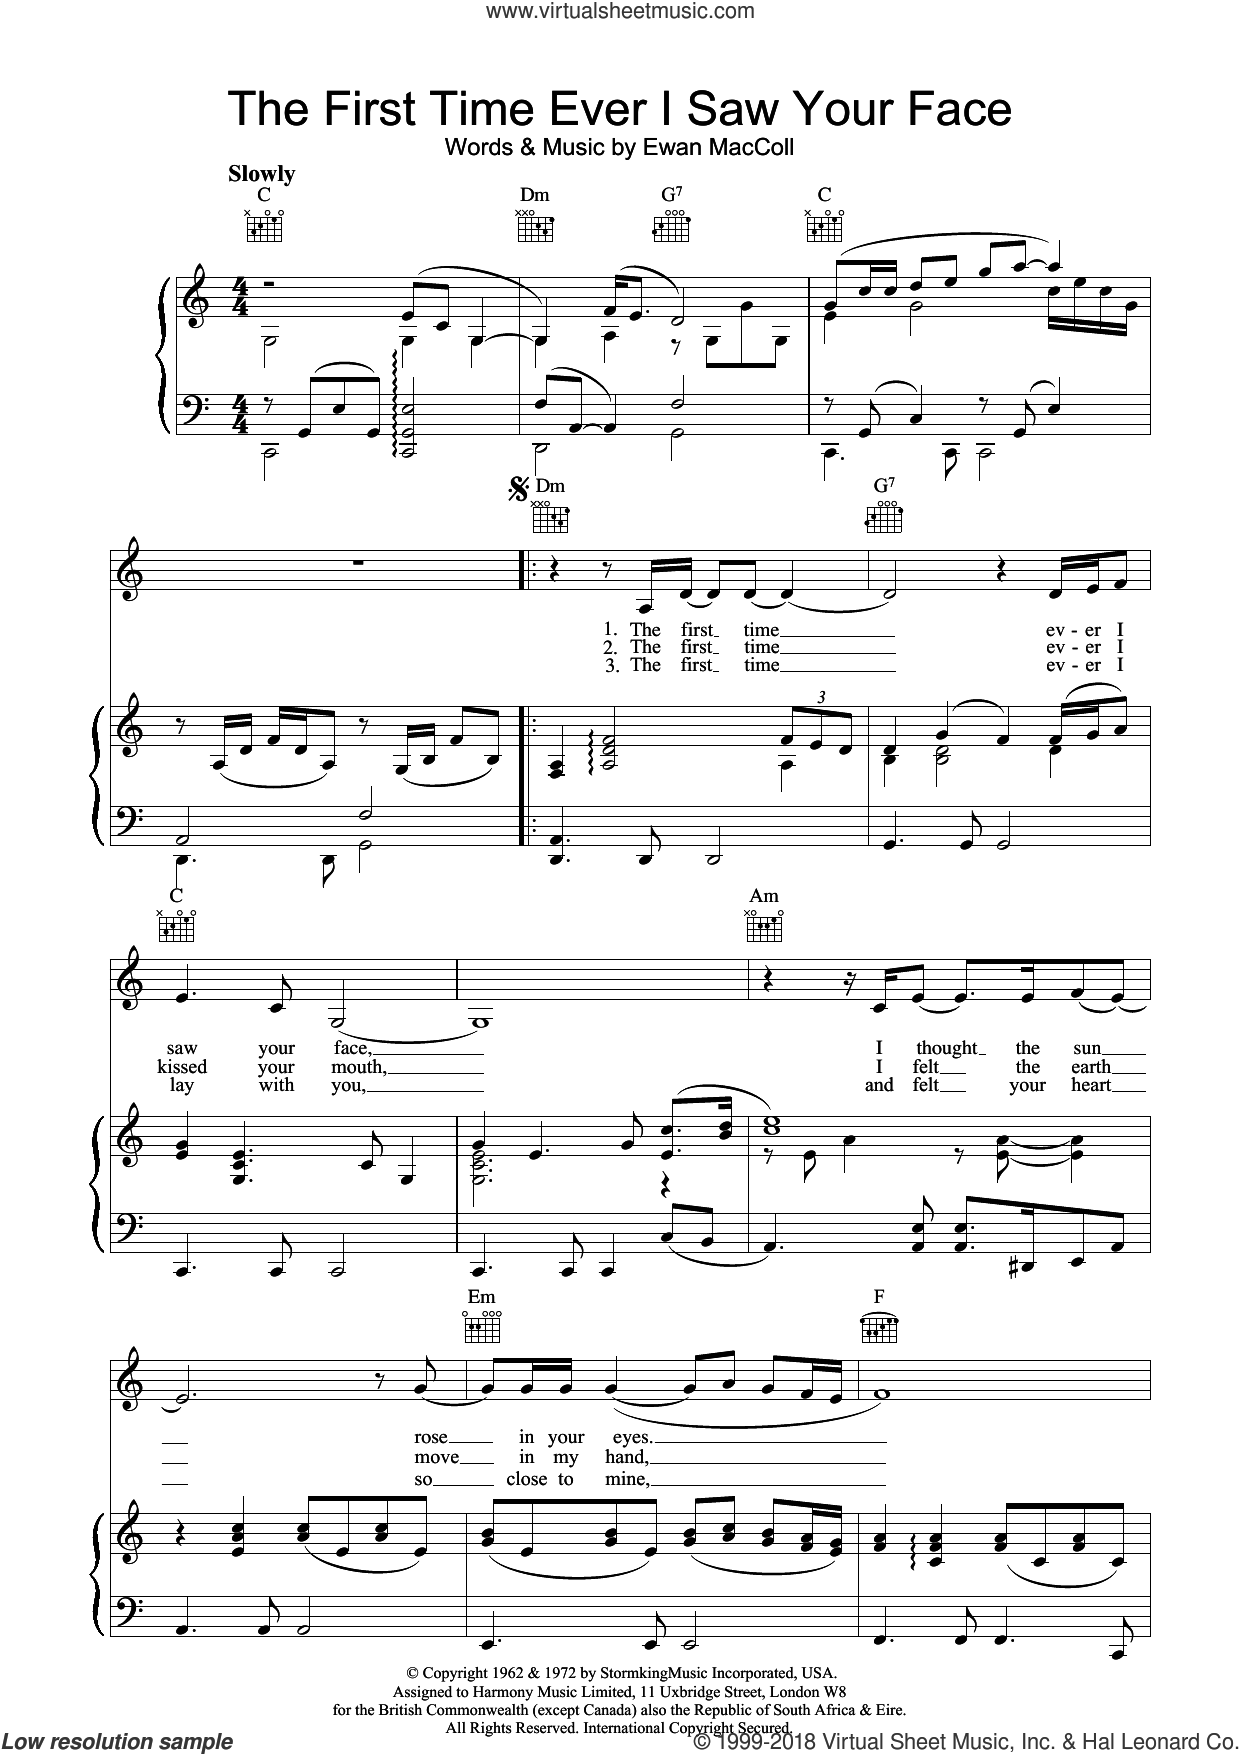 The First Time Ever I Saw Your Face sheet music for voice, piano or guitar by Johnny Mathis, Journey South and Ewan MacColl, intermediate skill level